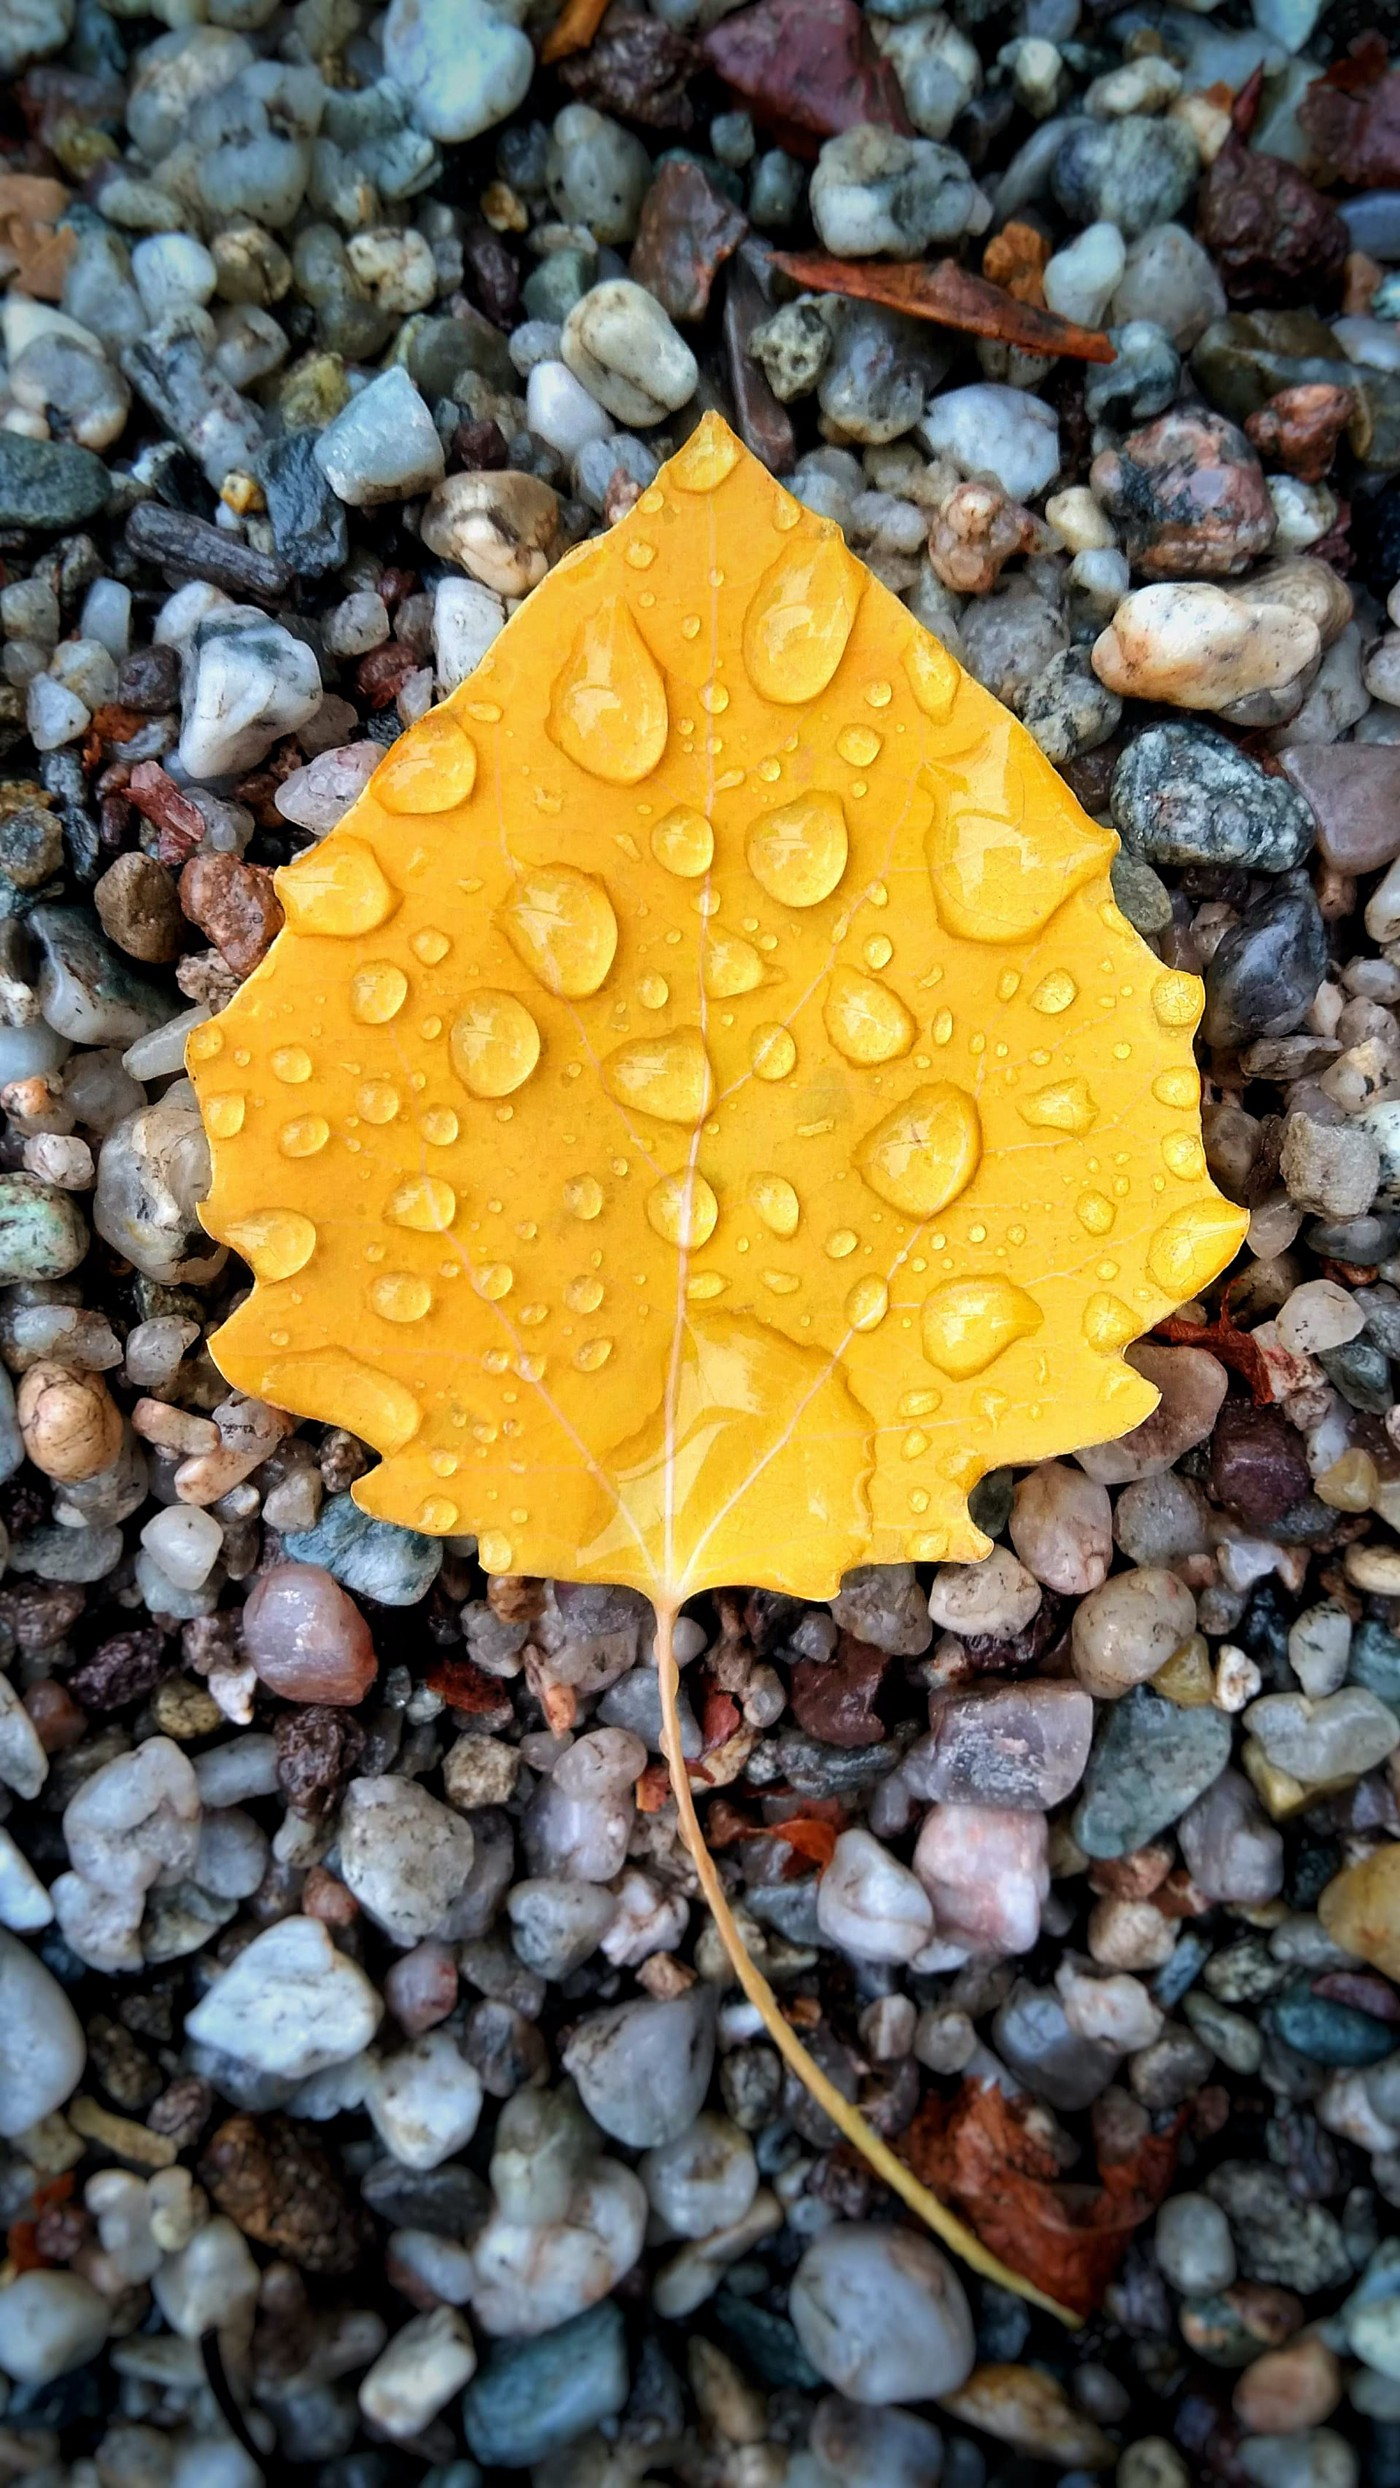 Bright yellow leaf with water droplets resting on small, pastel-colored wet rocks.